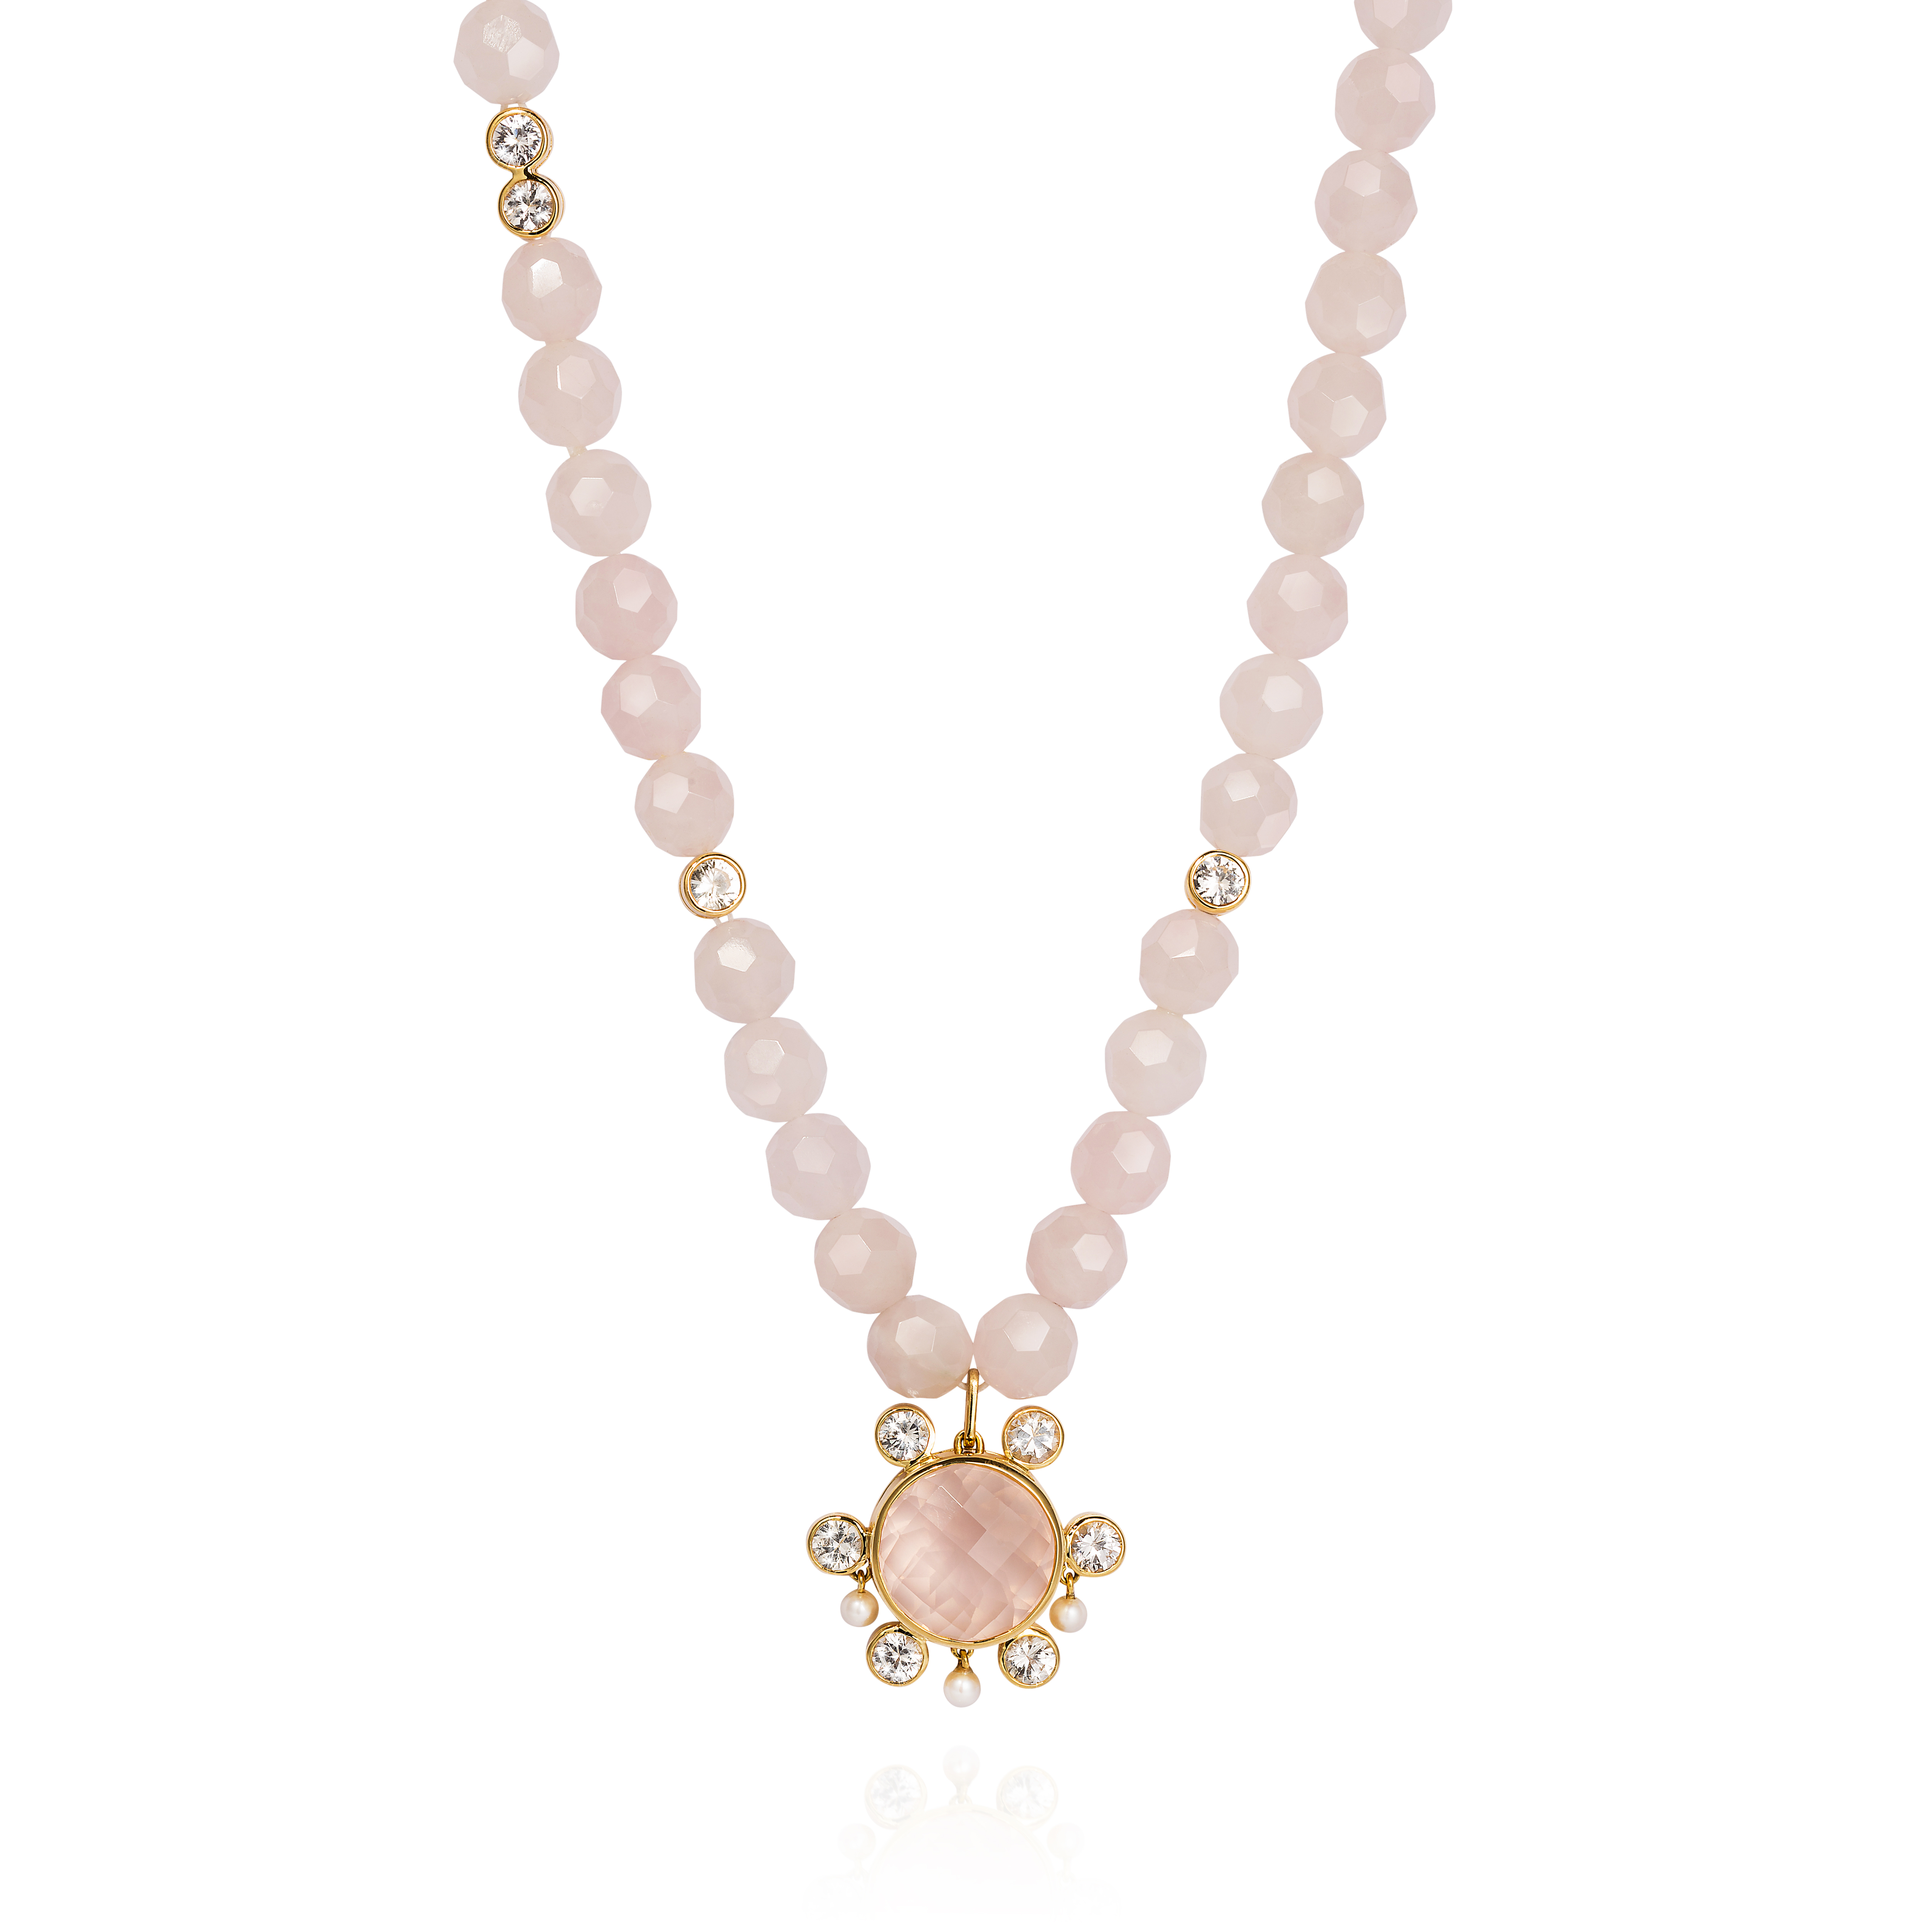 Lantern Necklace – White Sapphires, Rose Quartz And Baby Pearls 18k Gold